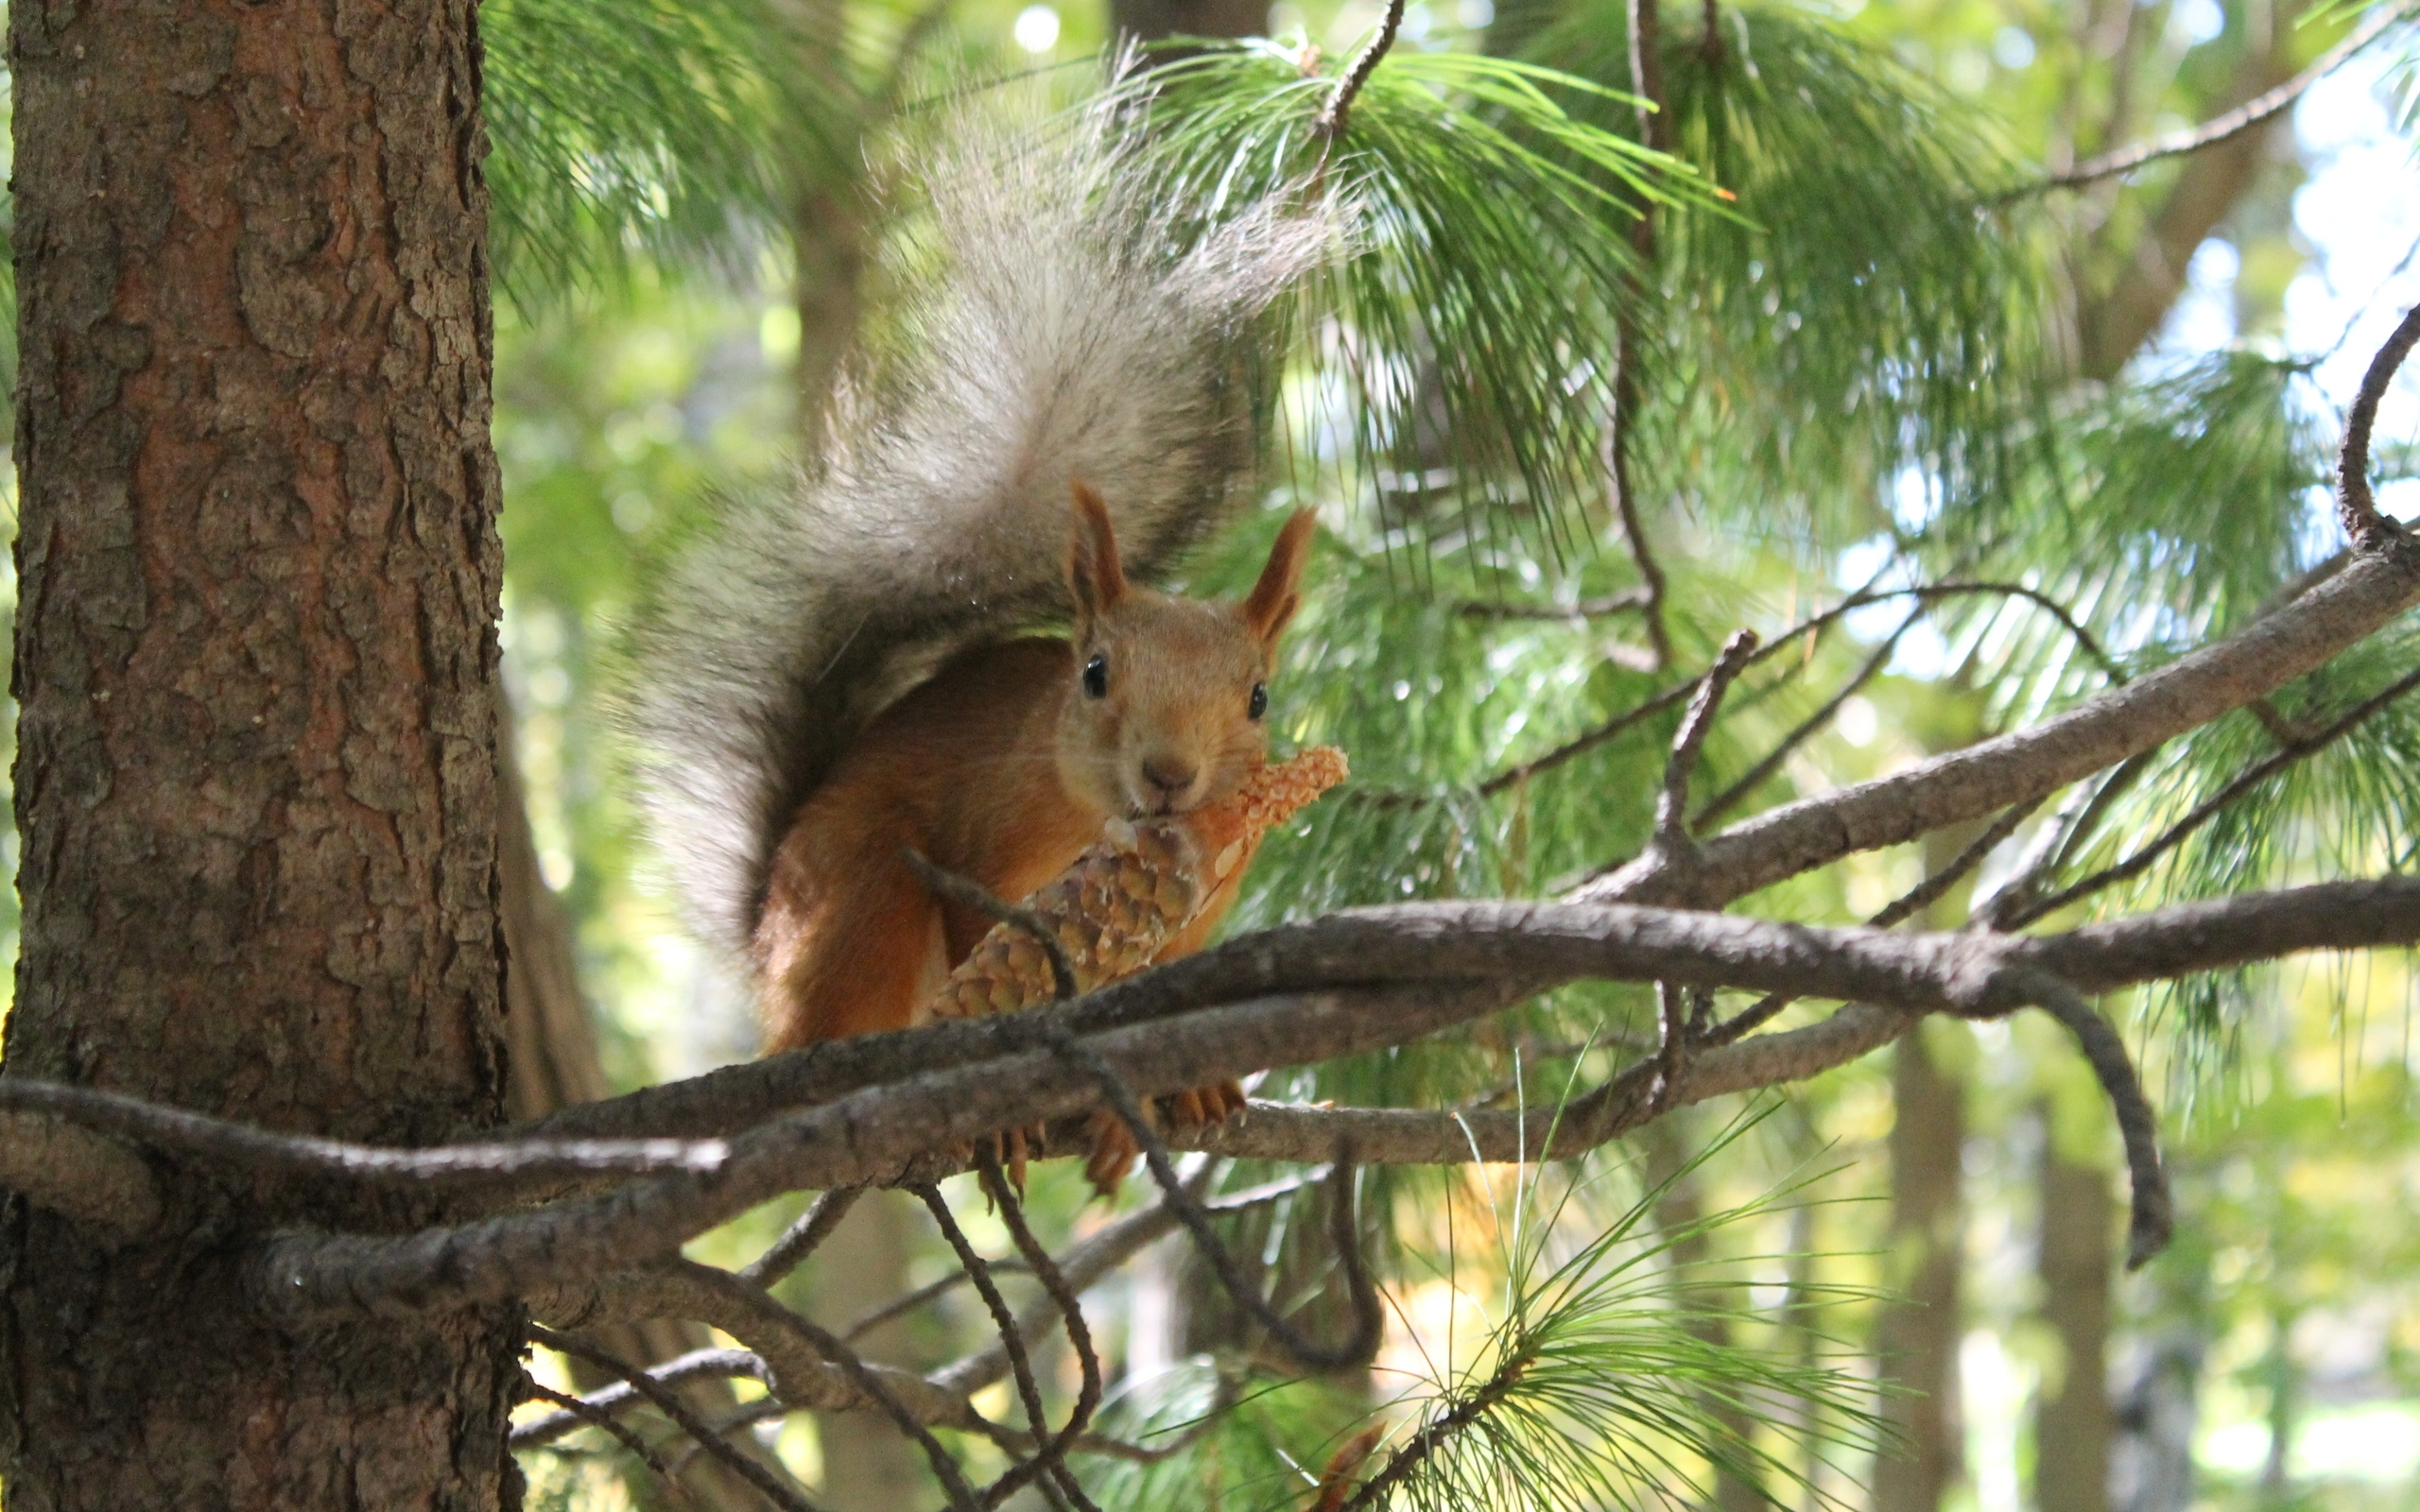 41656 download wallpaper Animals, Squirrel screensavers and pictures for free